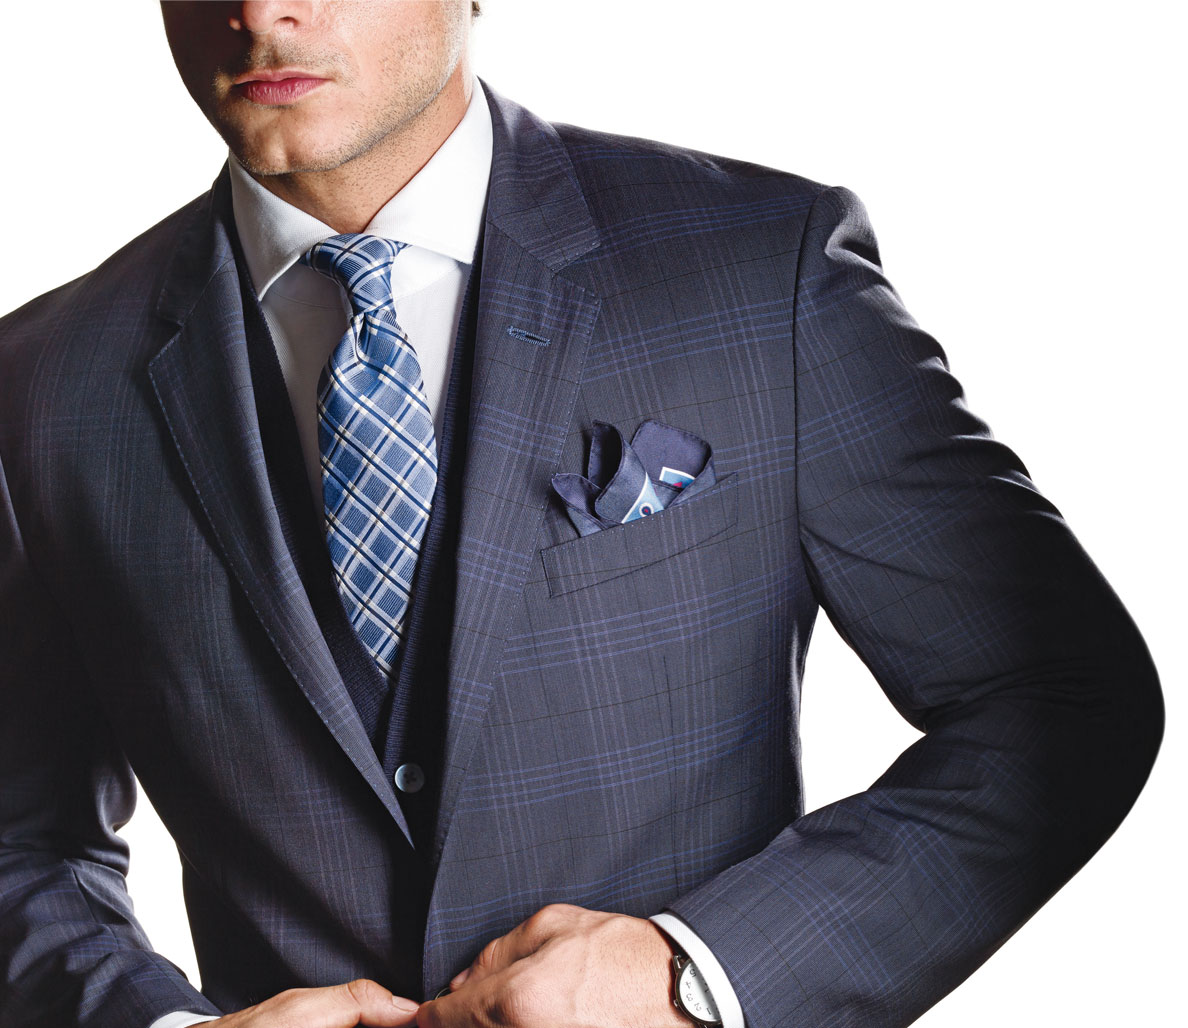 What to Wear to a Job Interview | Men's Fitness